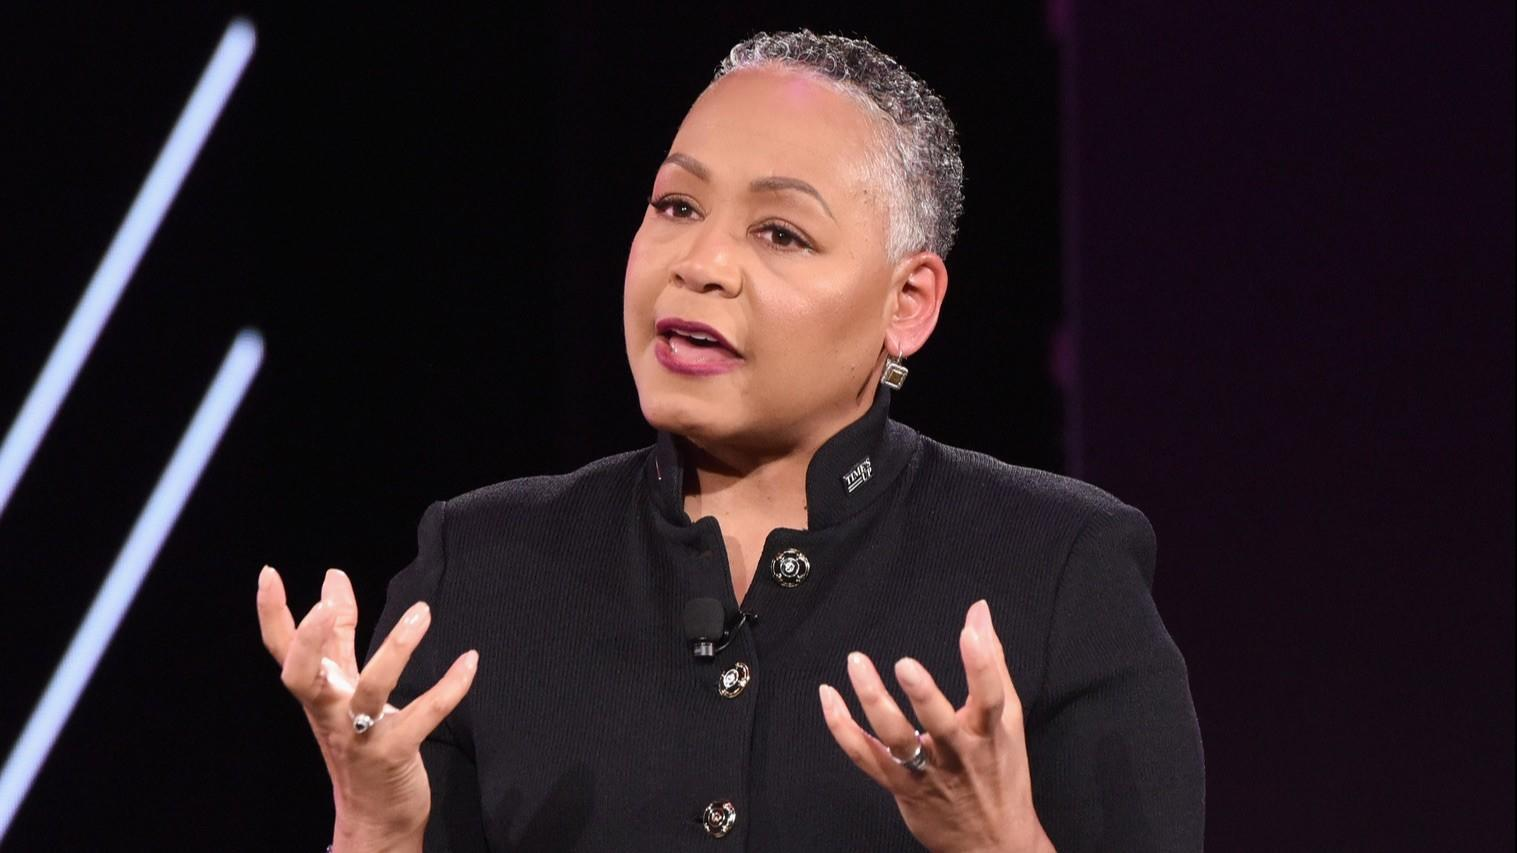 Sexual misconduct allegations against Time's Up CEO Lisa Borders' son prompted her resignation